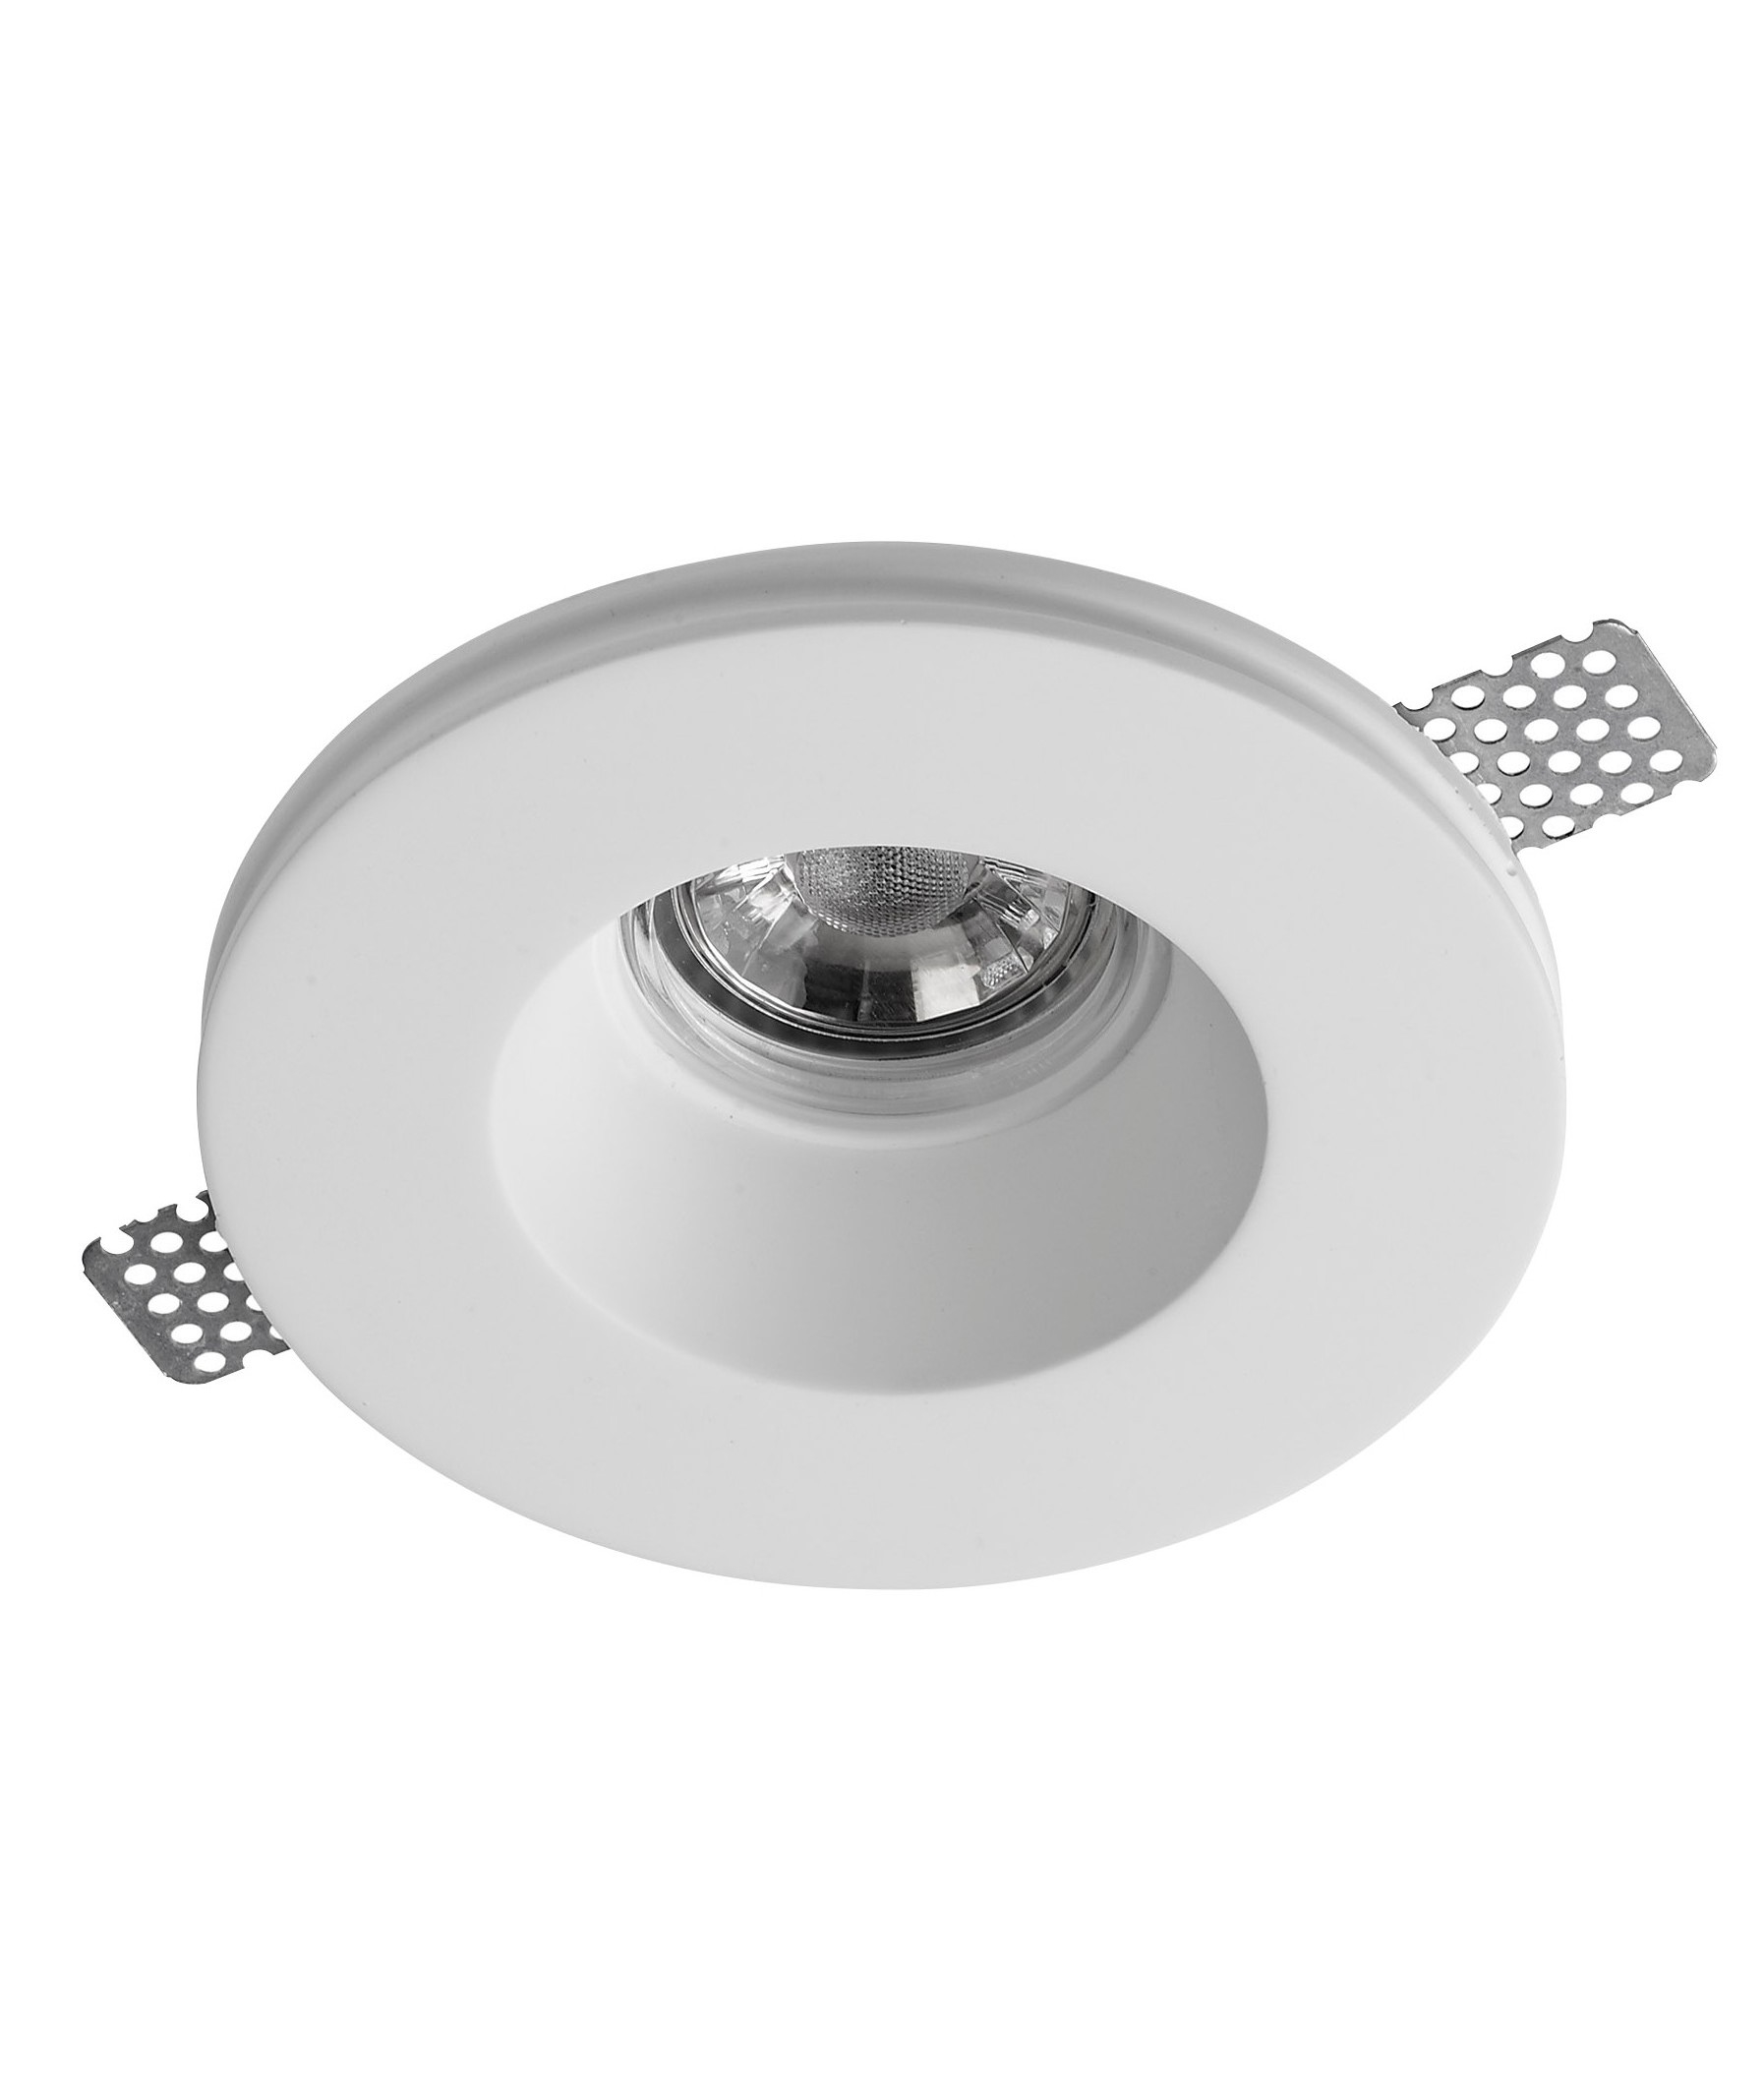 Easy To Install Trimless Downlights Lighting Styles How Wire Recessed Ceiling Lights Howtos Diy Low Glare Plaster In Downlight For 125mm Ceilings